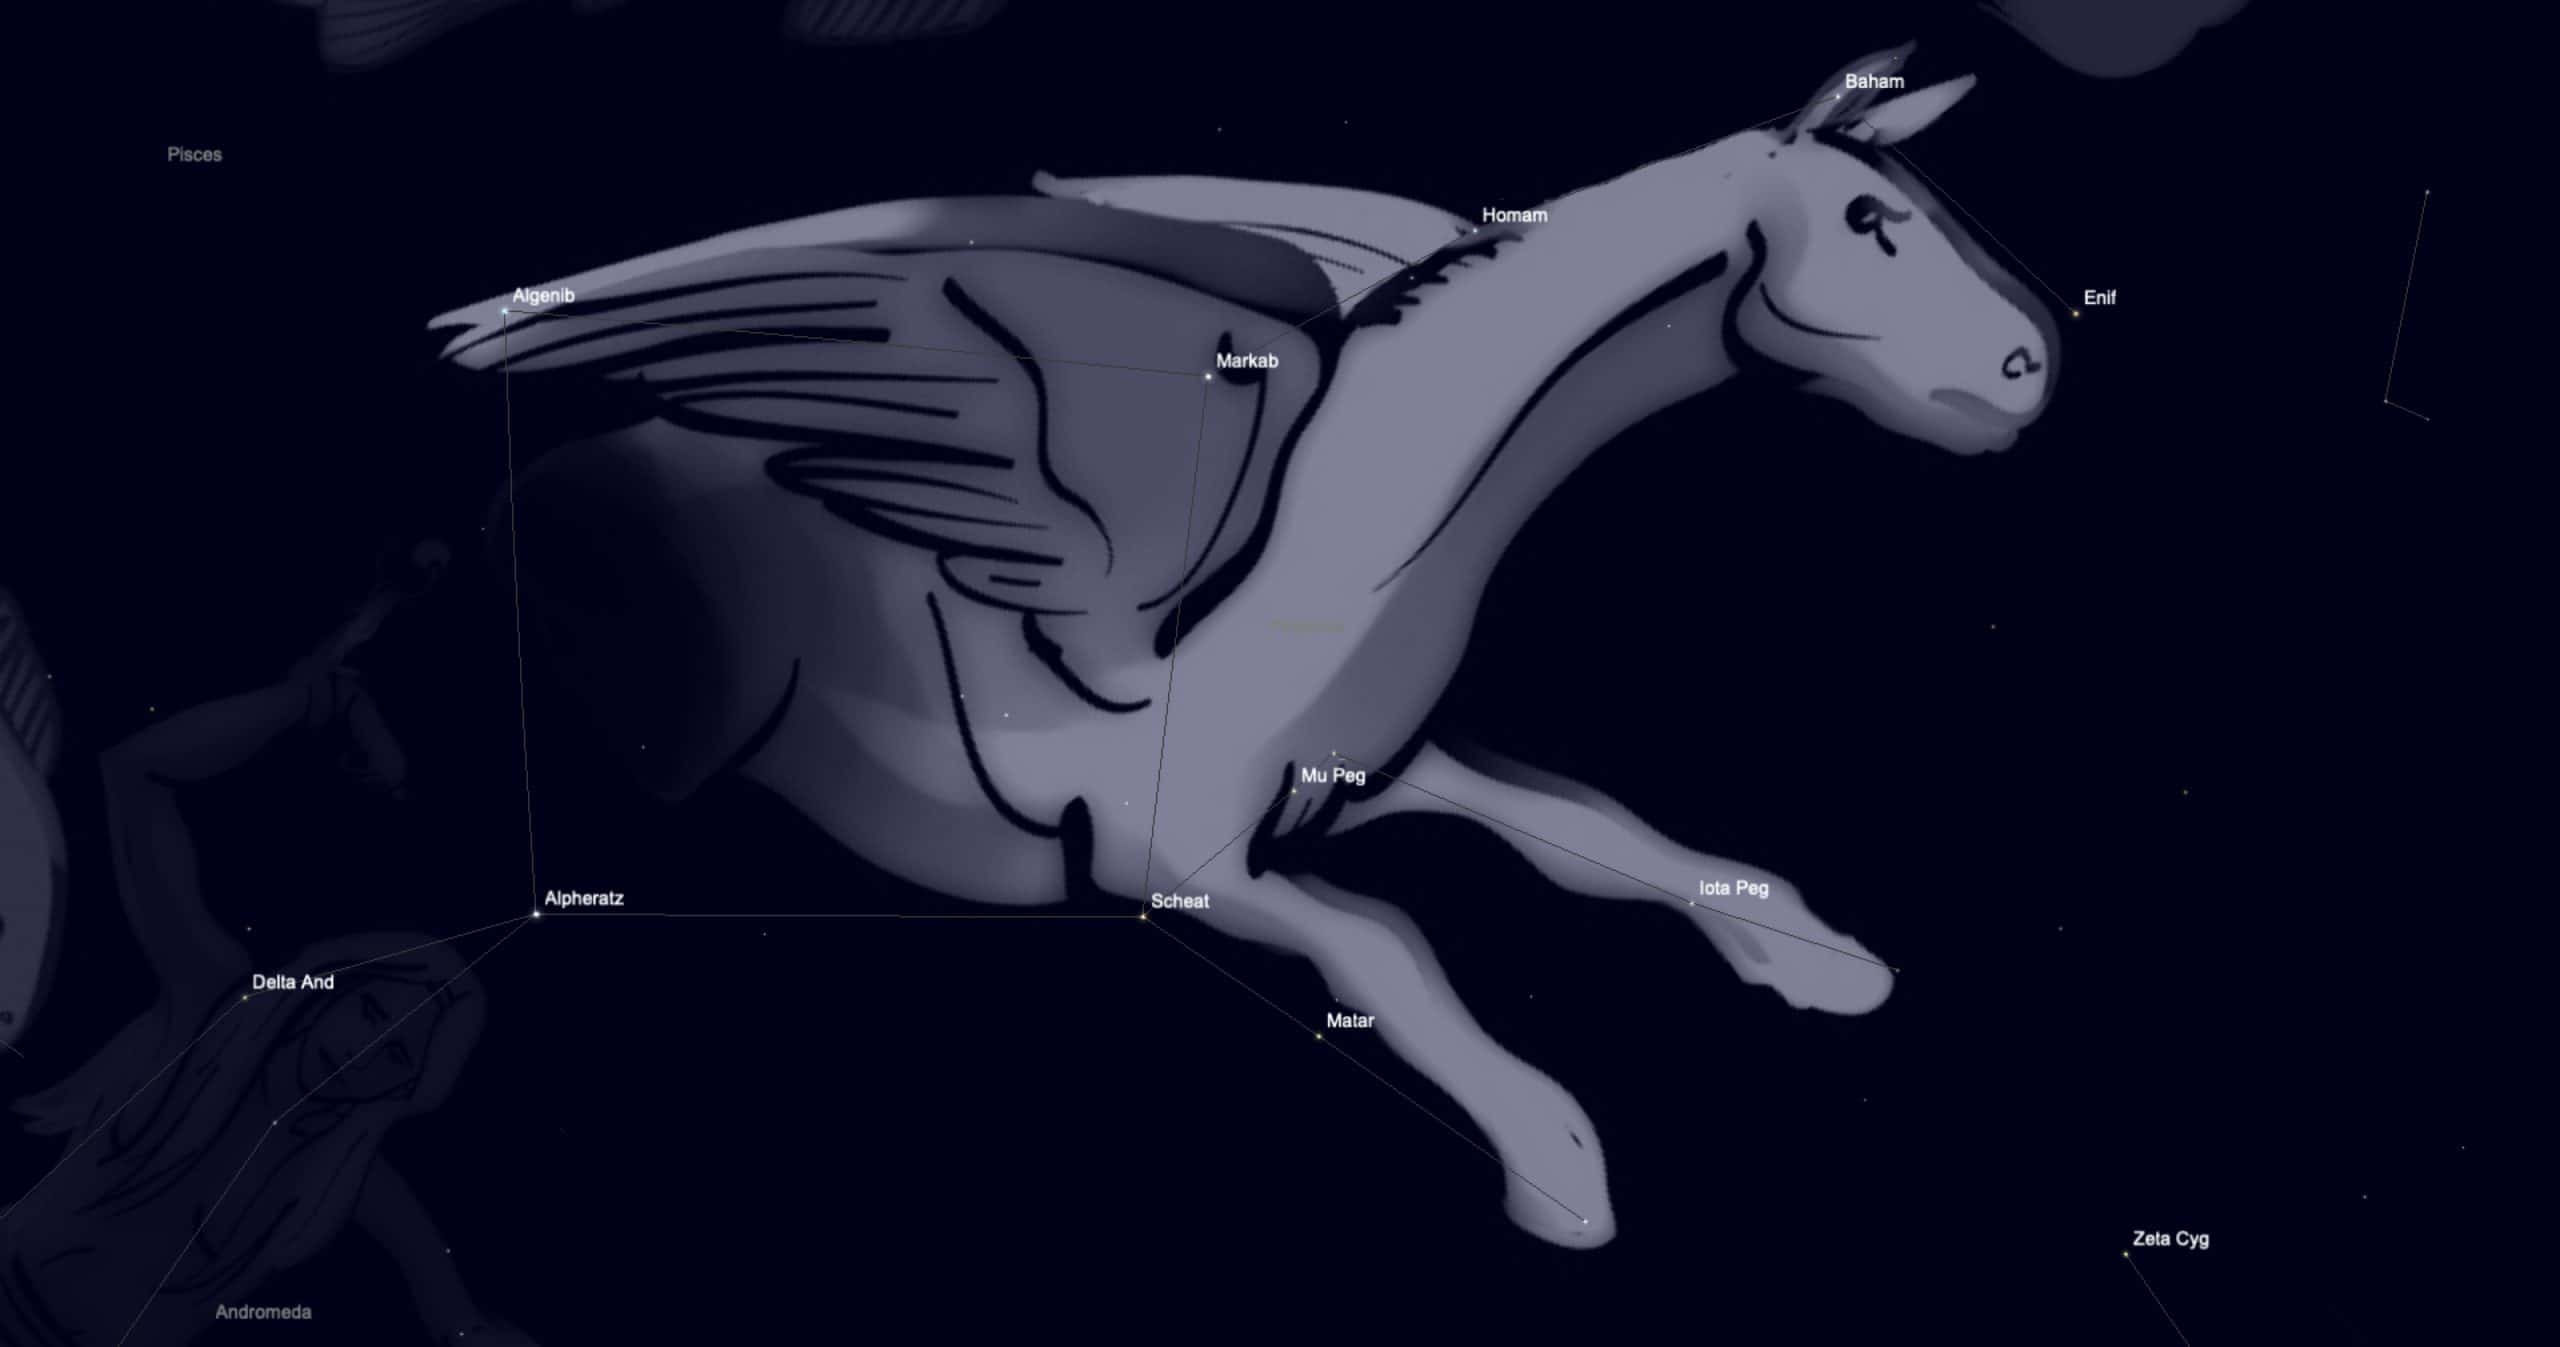 The flying horse sitting behind the constellation of Pegasus